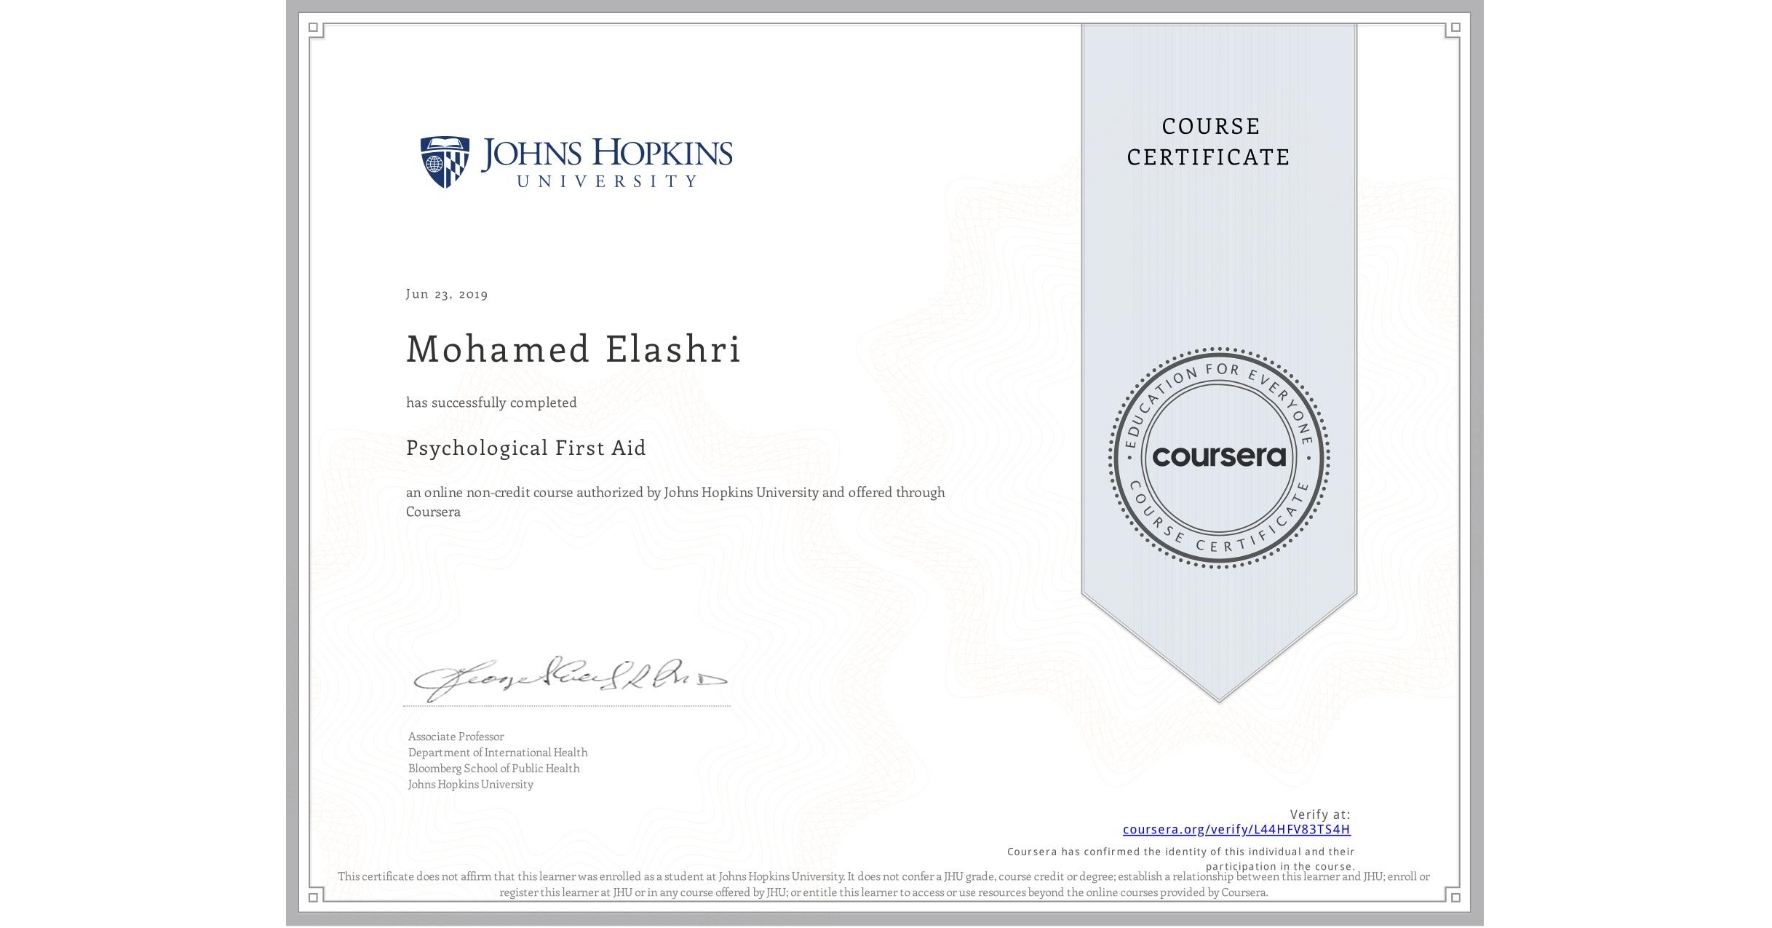 View certificate for Mohamed Elashri, Psychological First Aid, an online non-credit course authorized by Johns Hopkins University and offered through Coursera